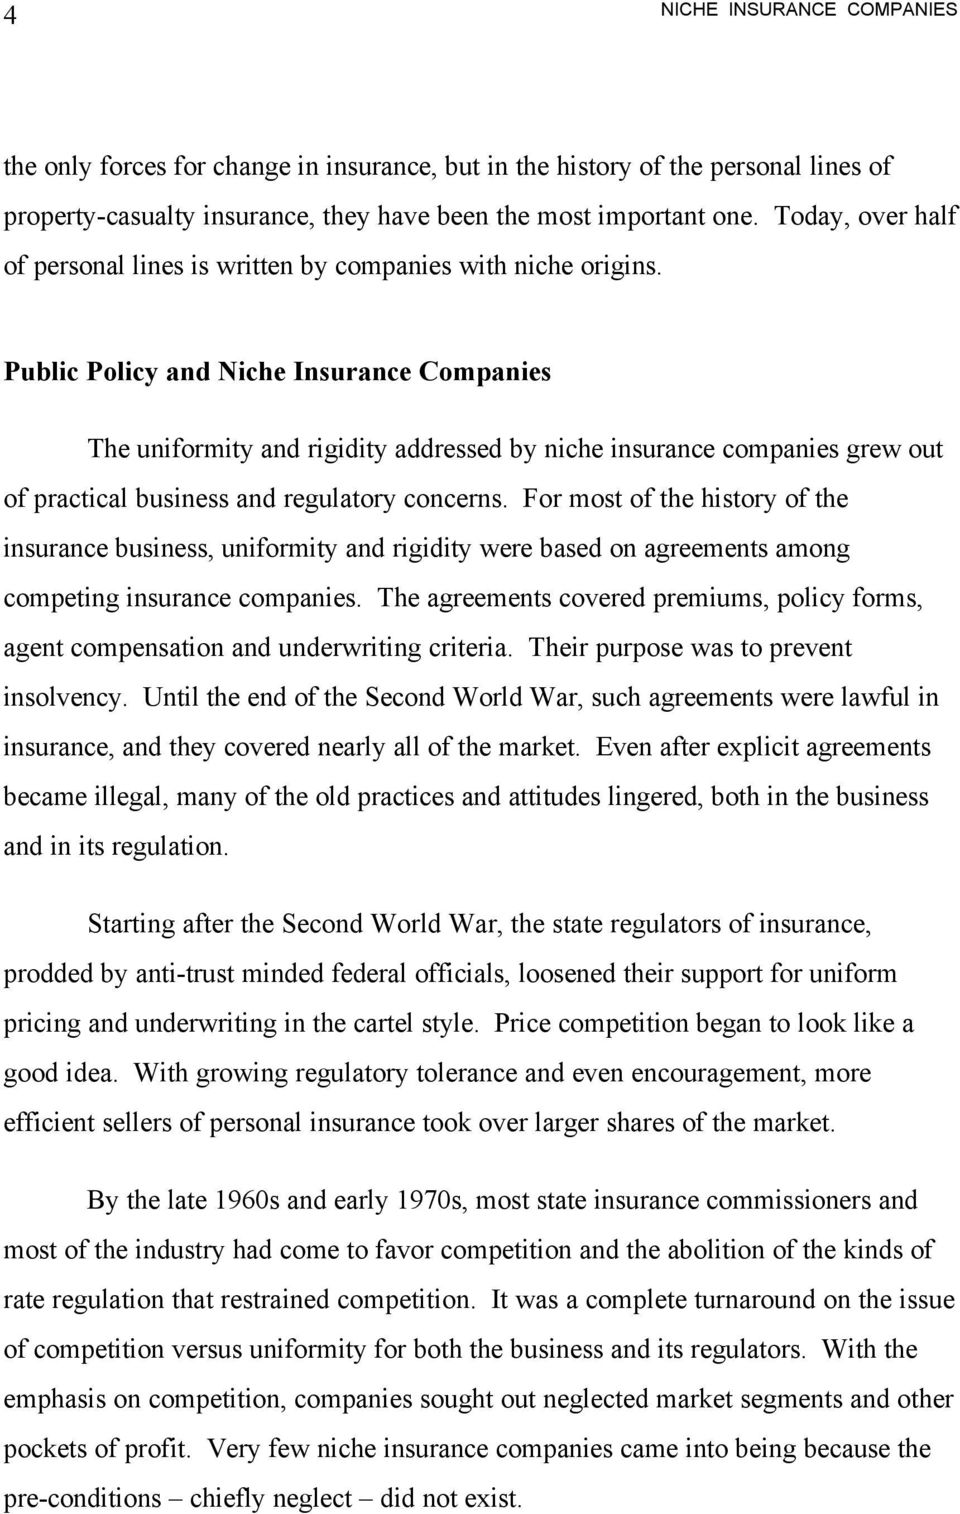 Public Policy and Niche Insurance Companies The uniformity and rigidity addressed by niche insurance companies grew out of practical business and regulatory concerns.